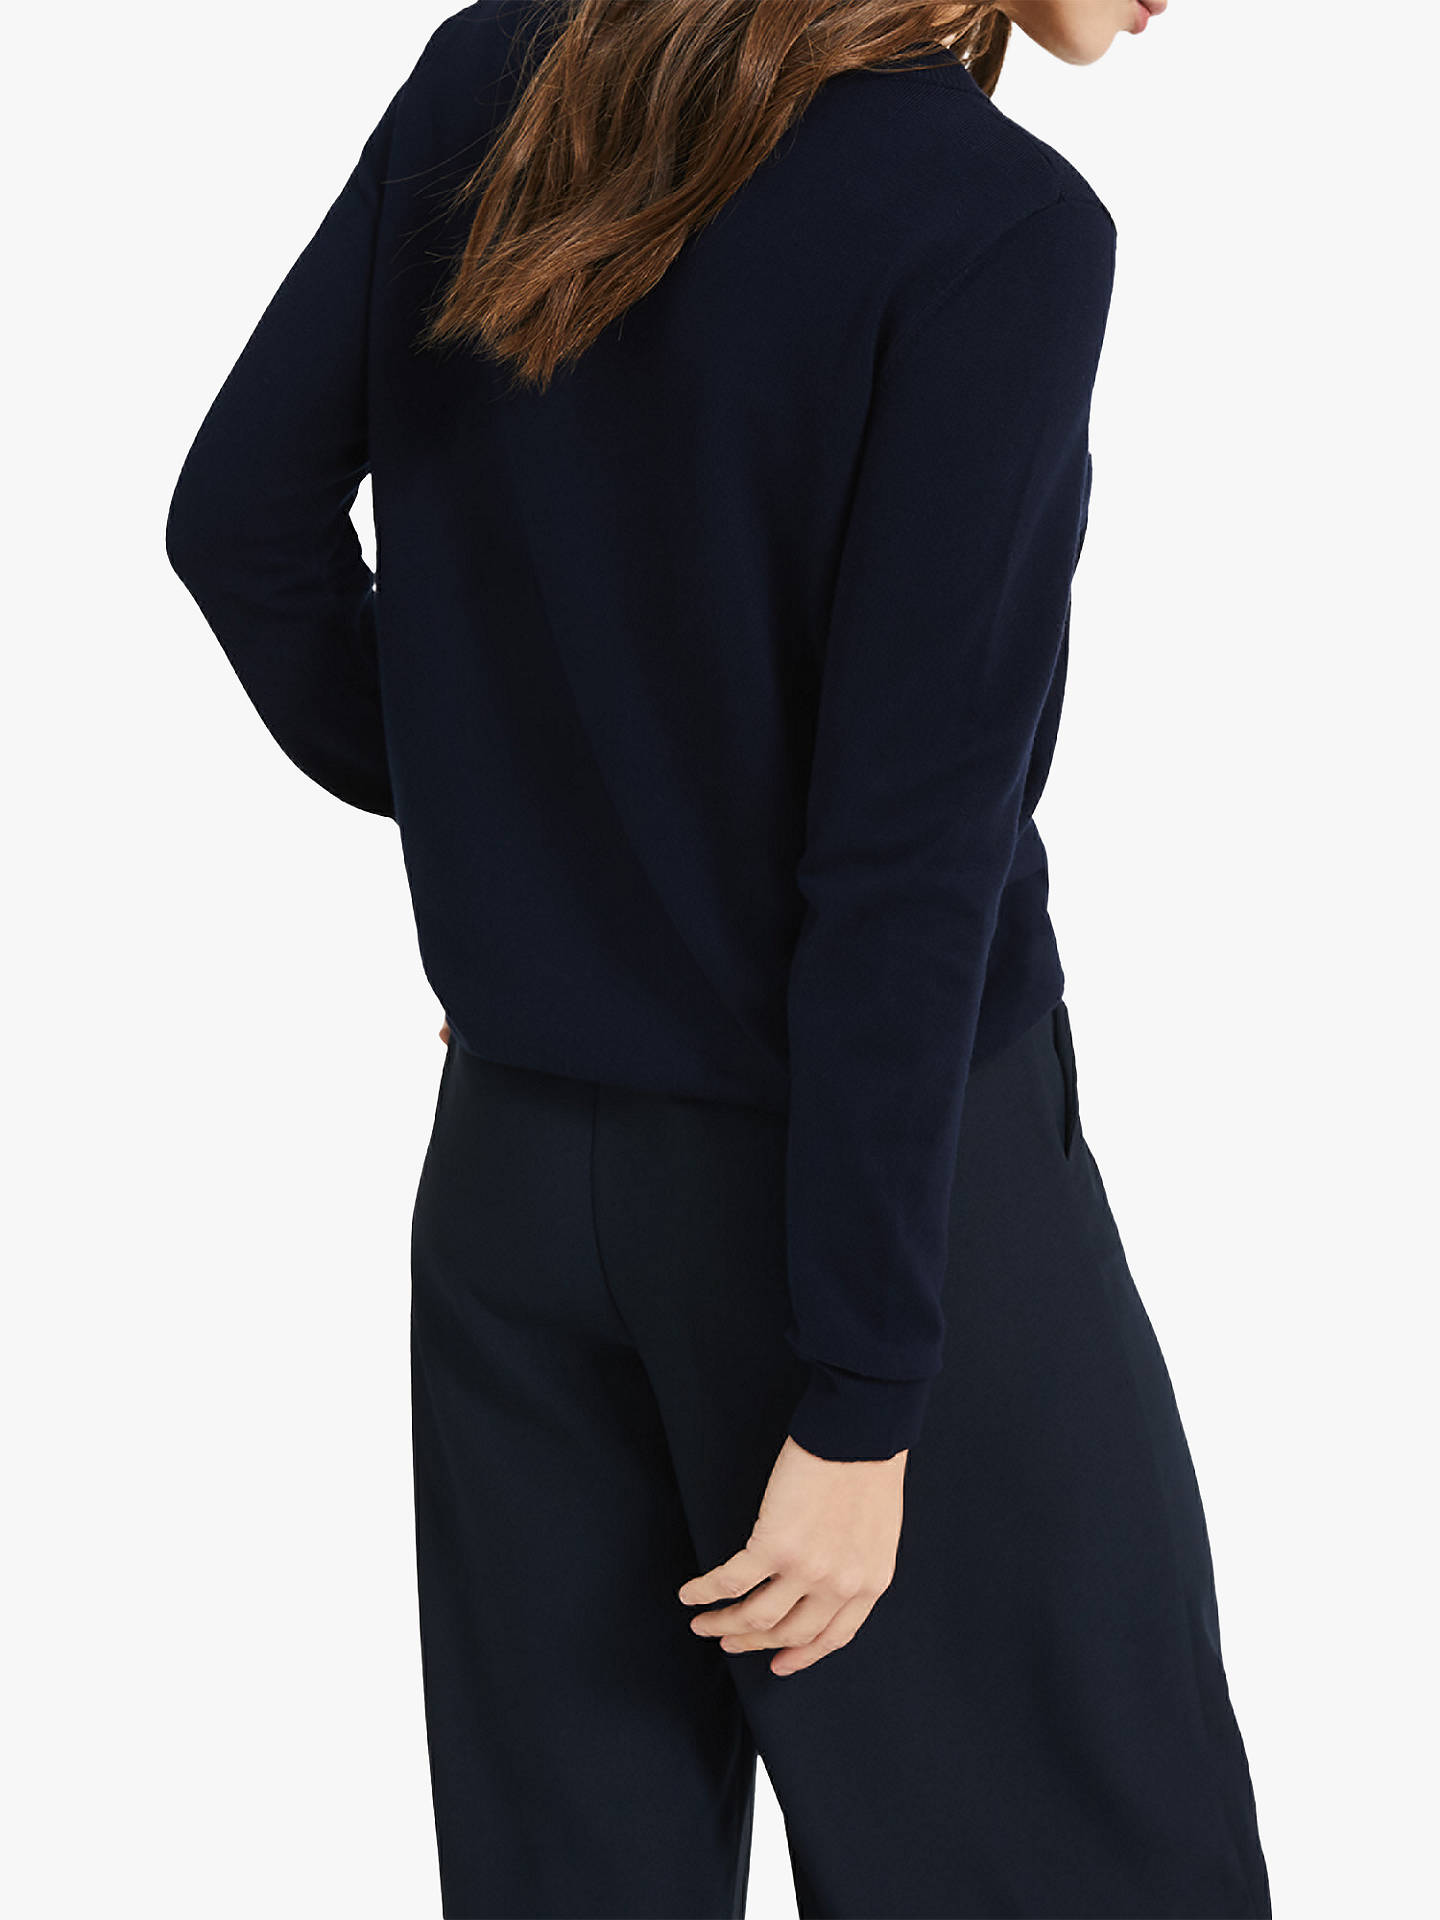 BuyPhase Eight Soleste Sparkle Jumper, Navy, 18 Online at johnlewis.com